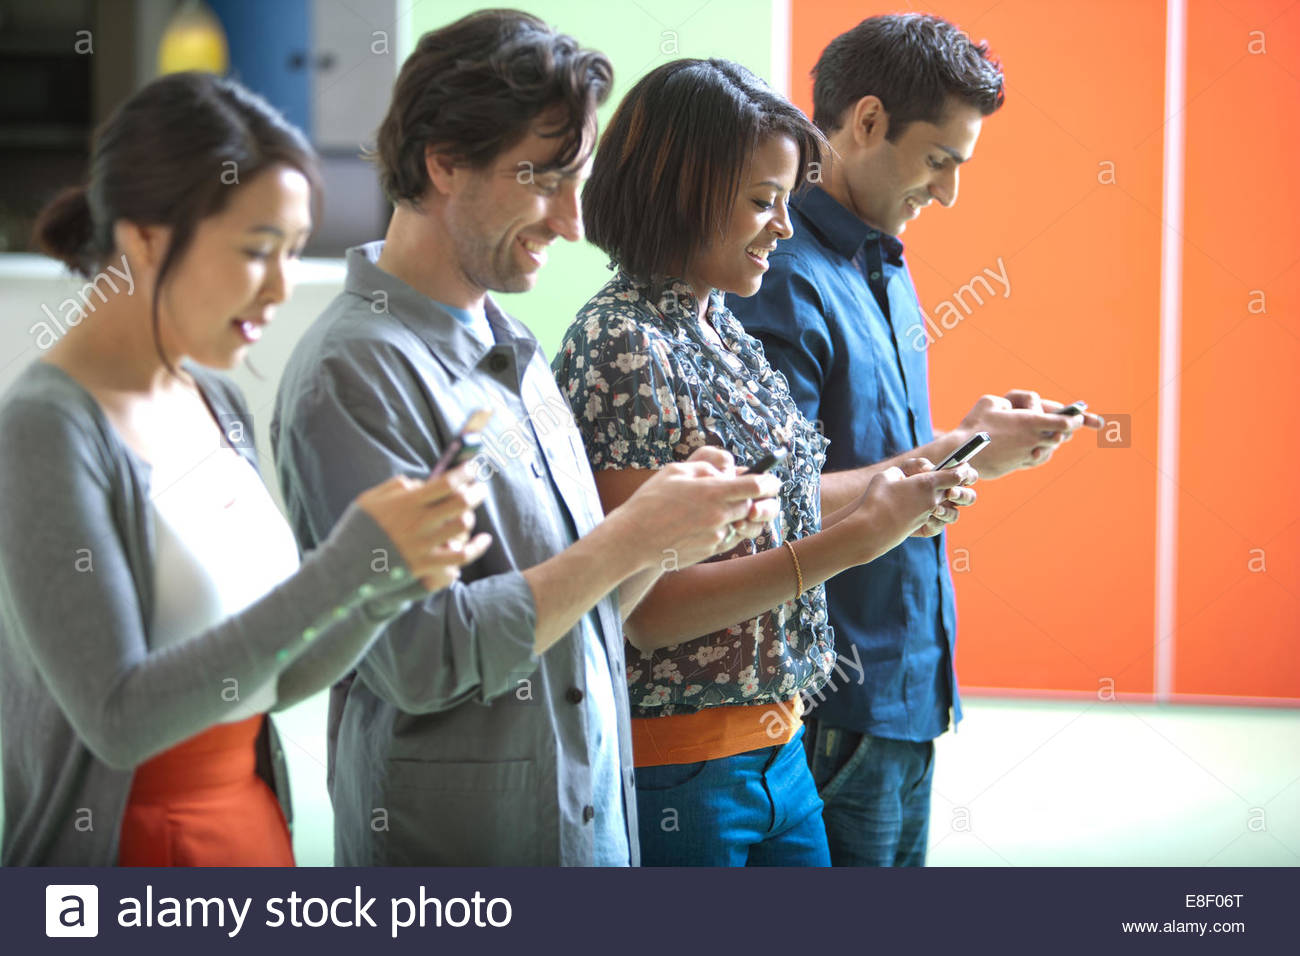 Smiling men and women text messaging on cell phones in a row - Stock Image